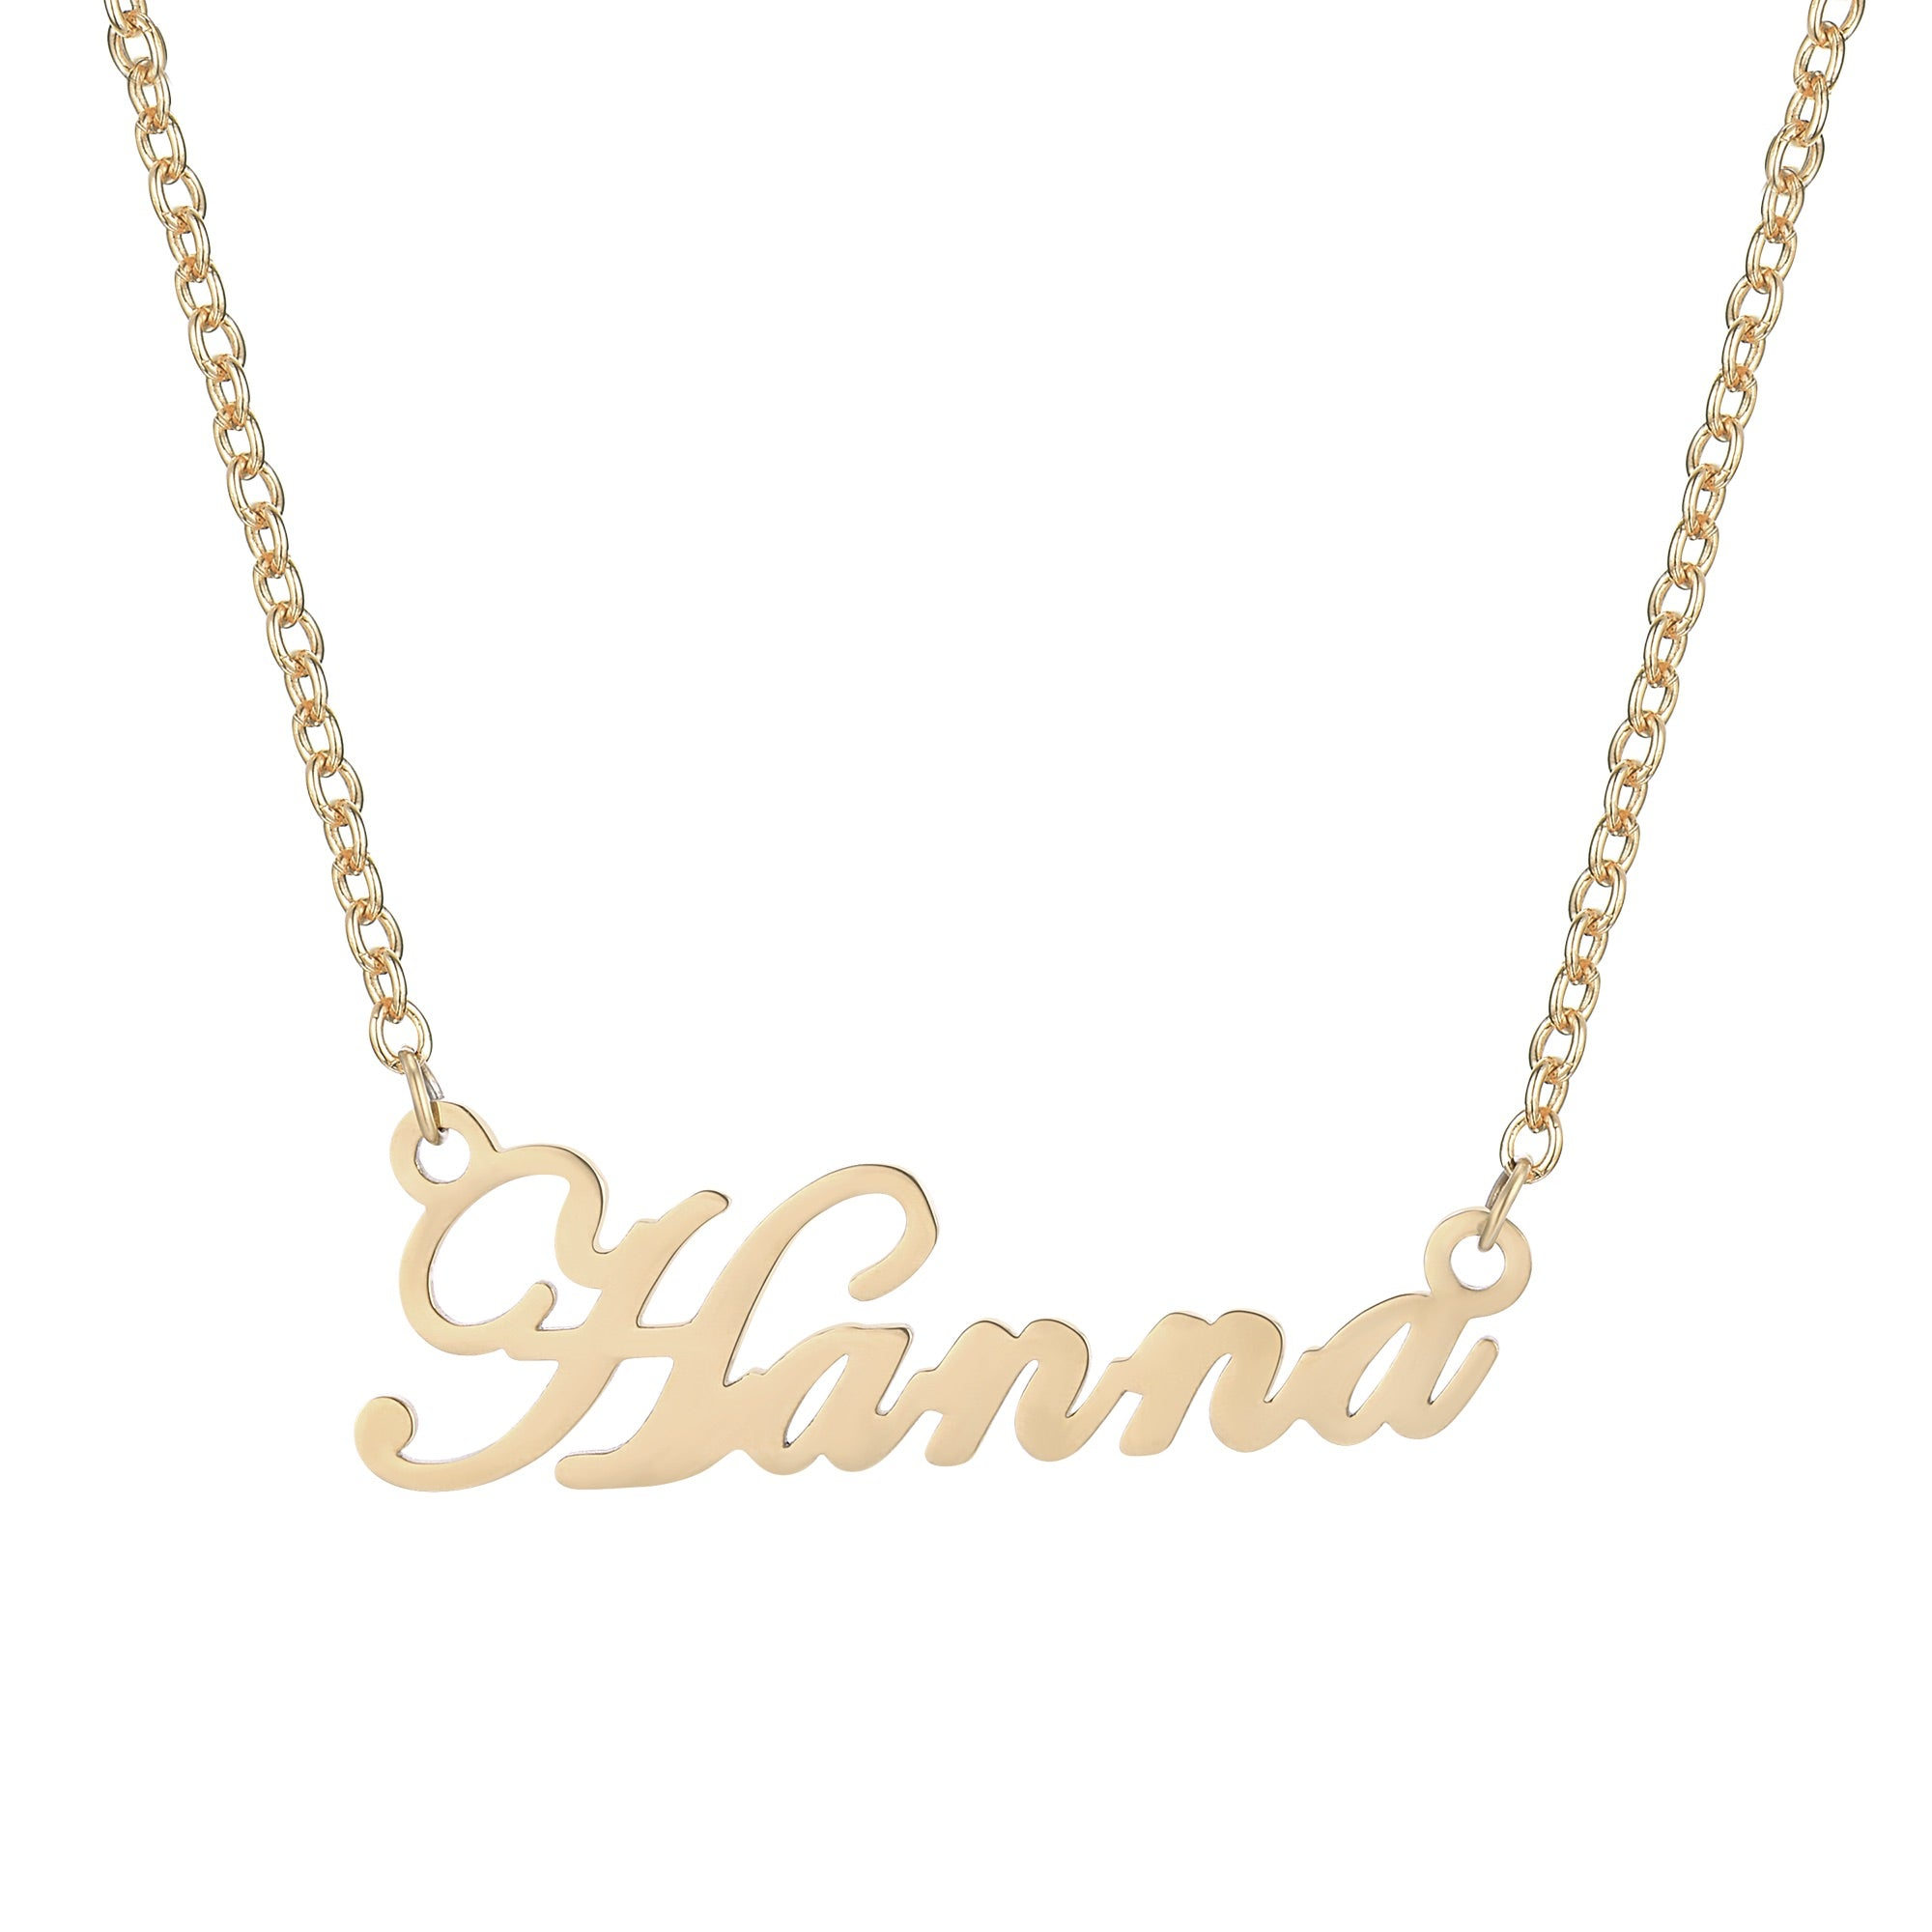 necklaces pendant hammered handstamped gold engraved necklace bar name personalized handmade jewelry